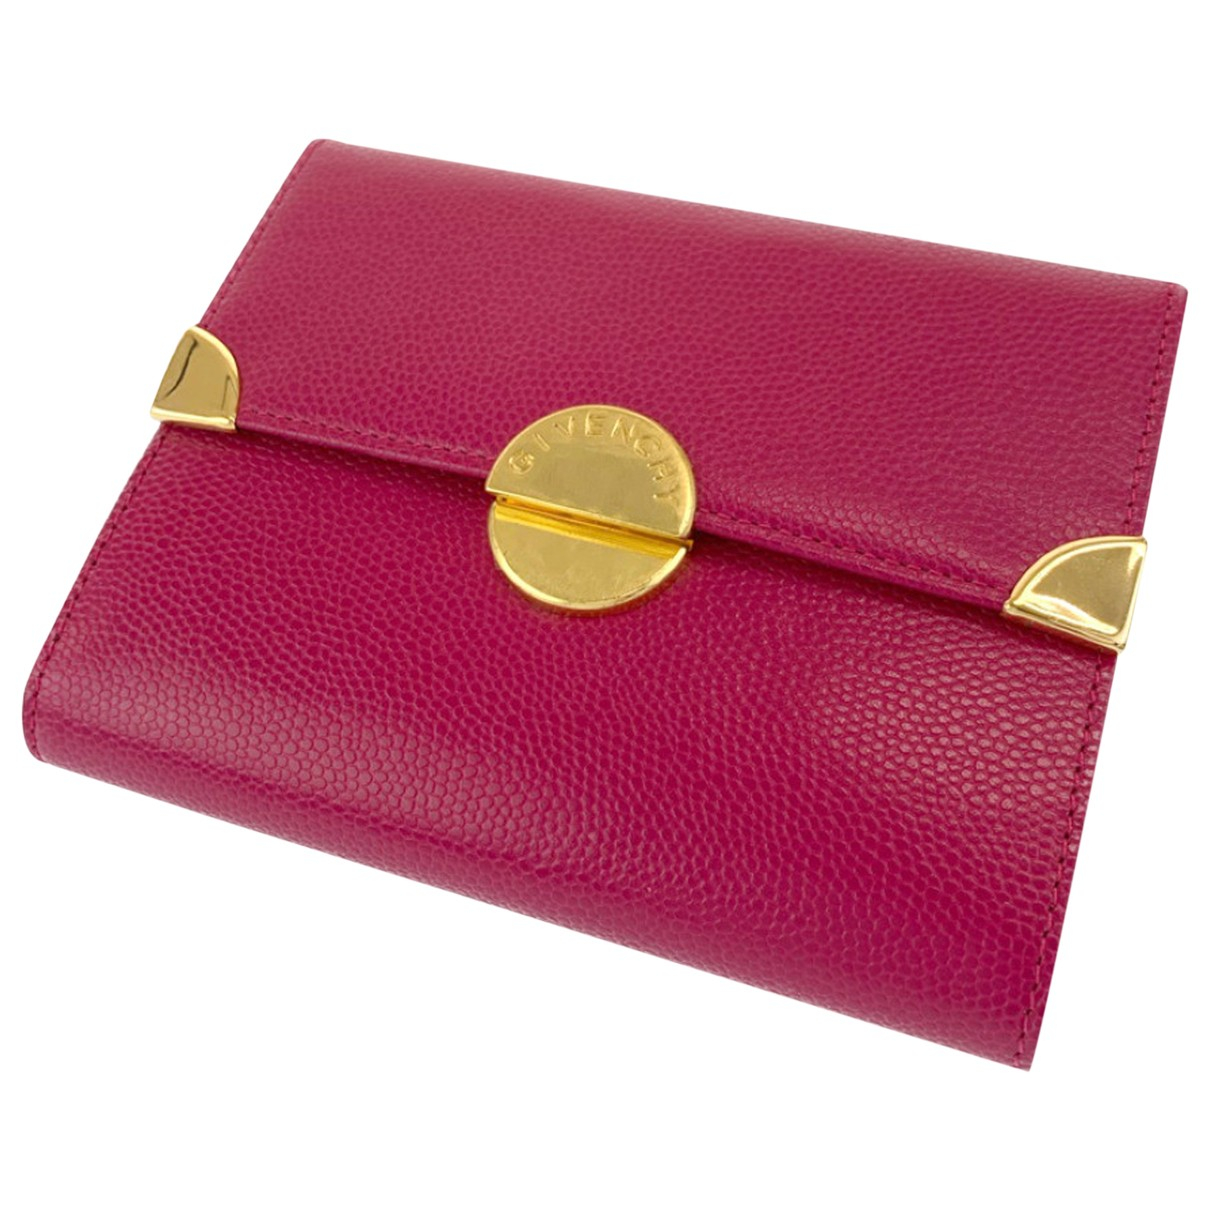 Givenchy N Leather wallet for Women N